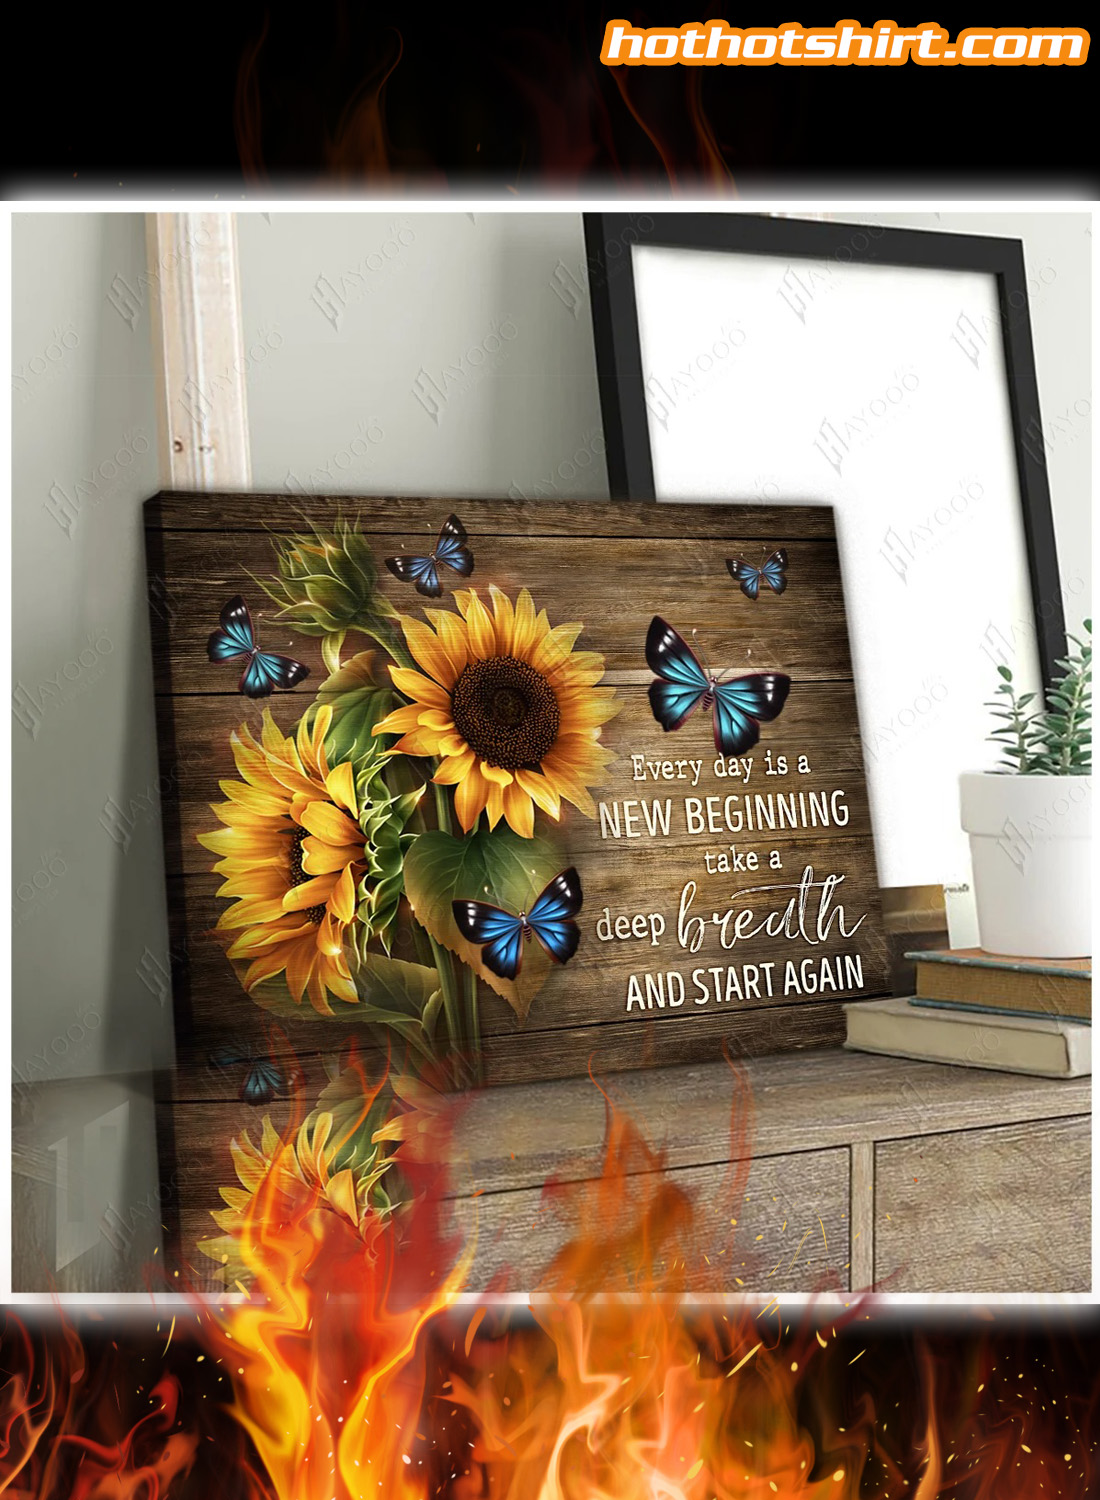 Sunflowers And Butterflies Every day is a new beginning take a deep breath and start again canvas prints and poster 3